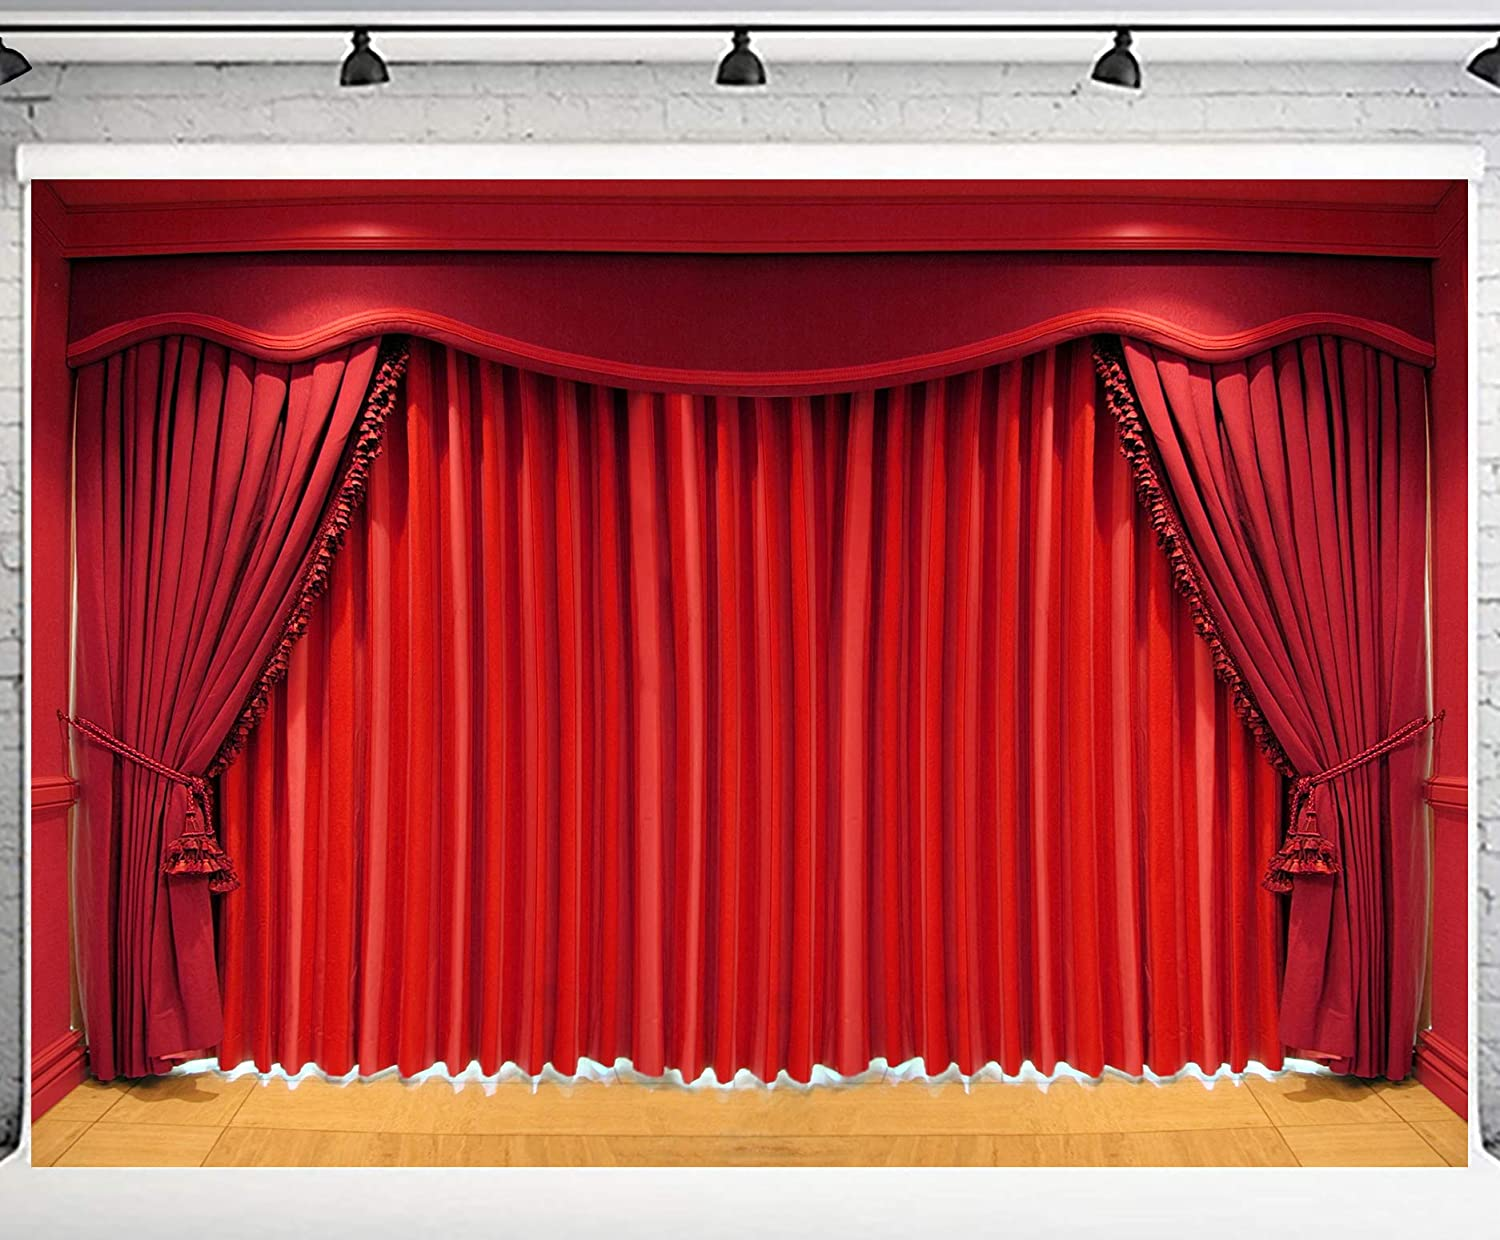 PHMOJEN Theater Interior Curtains